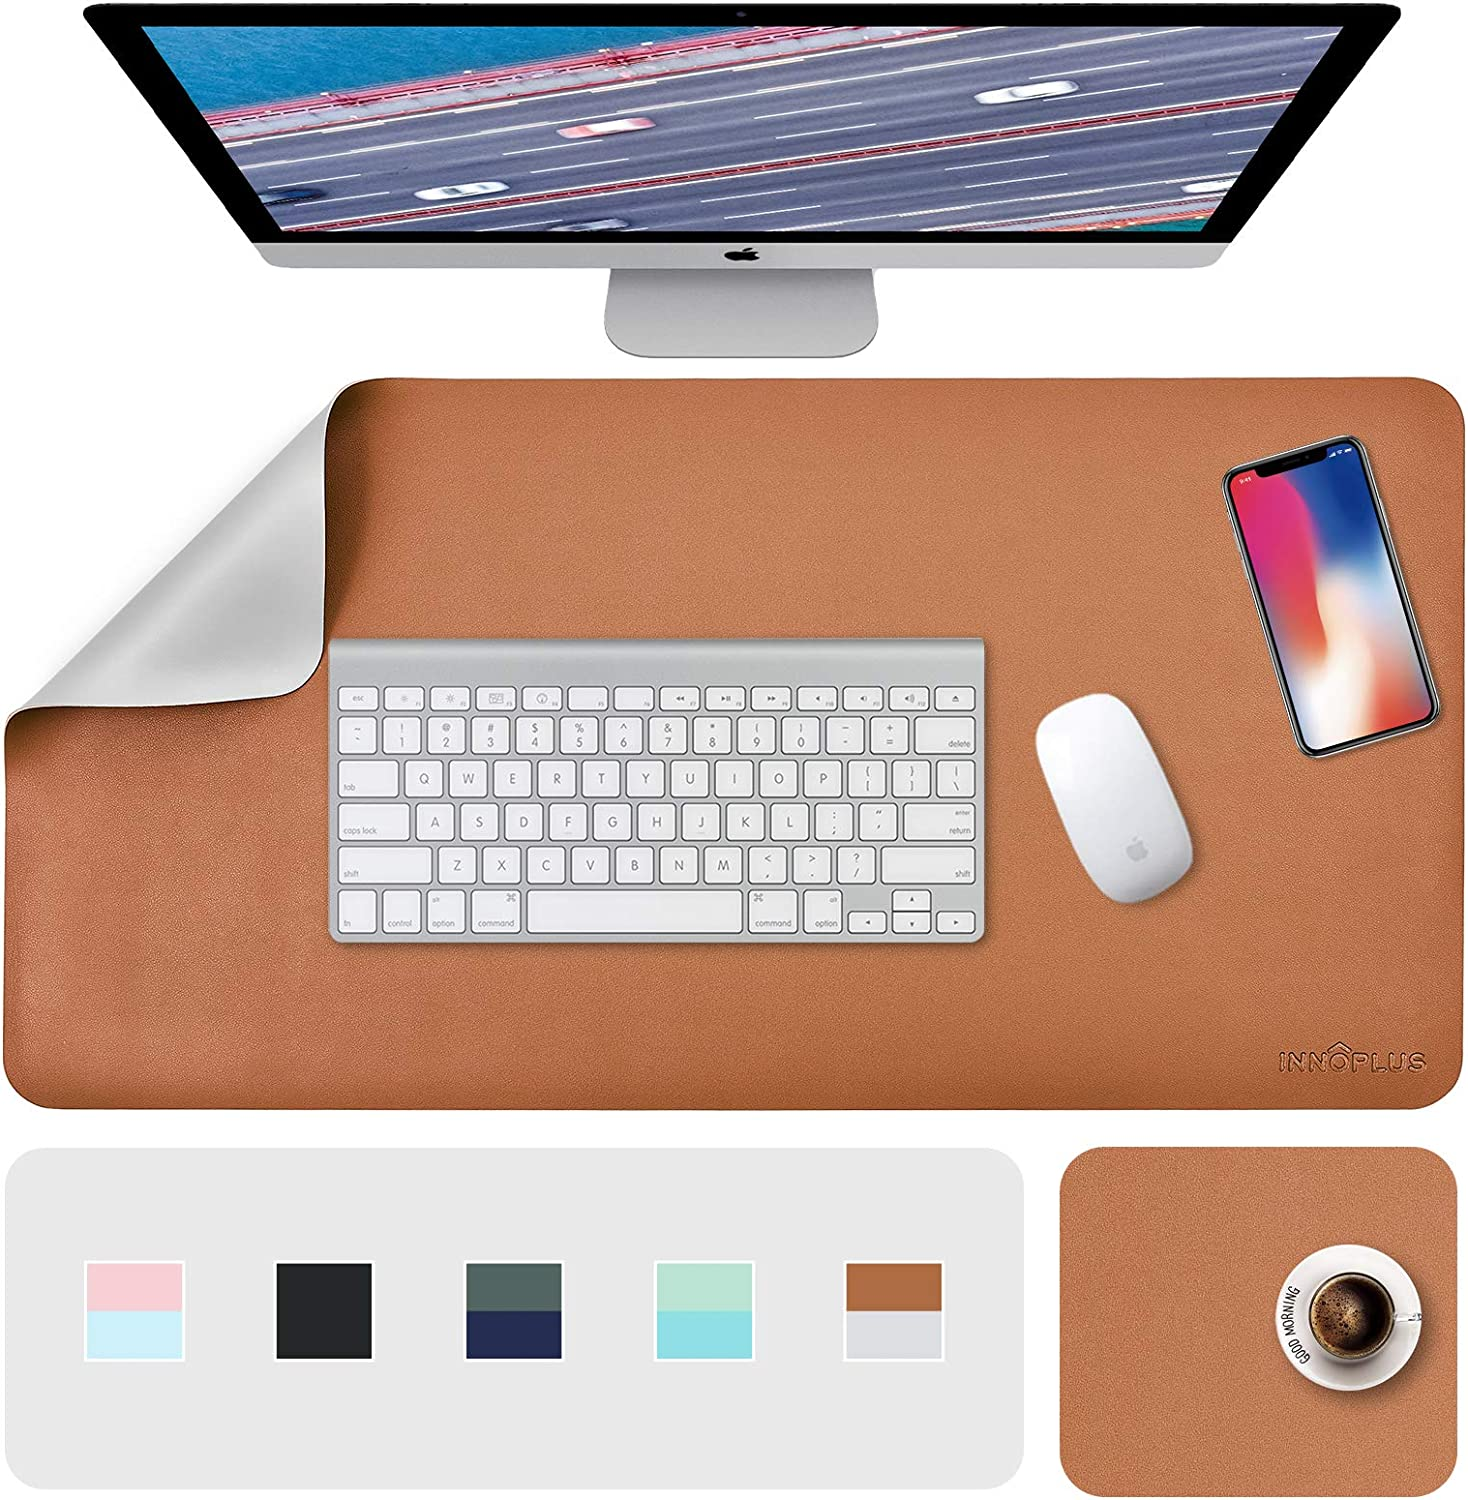 """Desk Pad, Desk Mat, Desk Blotter, Large Desk Pads Dual-Sided Brown/Gray, 31.5"""" x 15.7"""" + 8""""x11"""" PU Leather Mouse Pad 2 Pack Waterproof, desk cover for Laptop, Home Office Table Protector Blotter Gifts"""